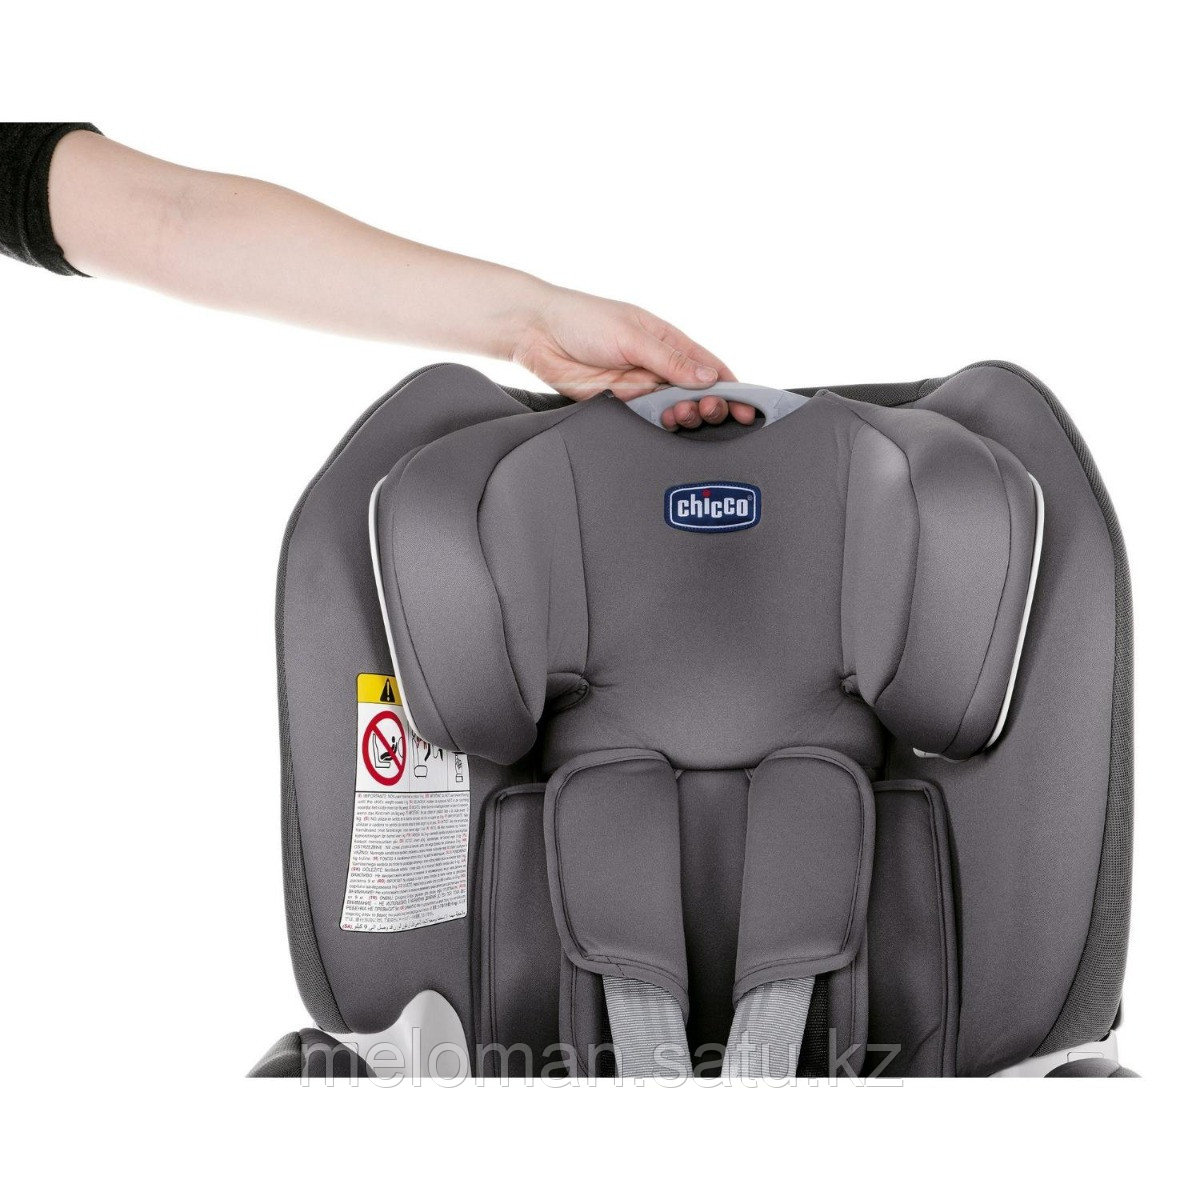 Chicco: Автокресло Seat Up 012 Pearl (0-25 kg) 0+ - фото 9